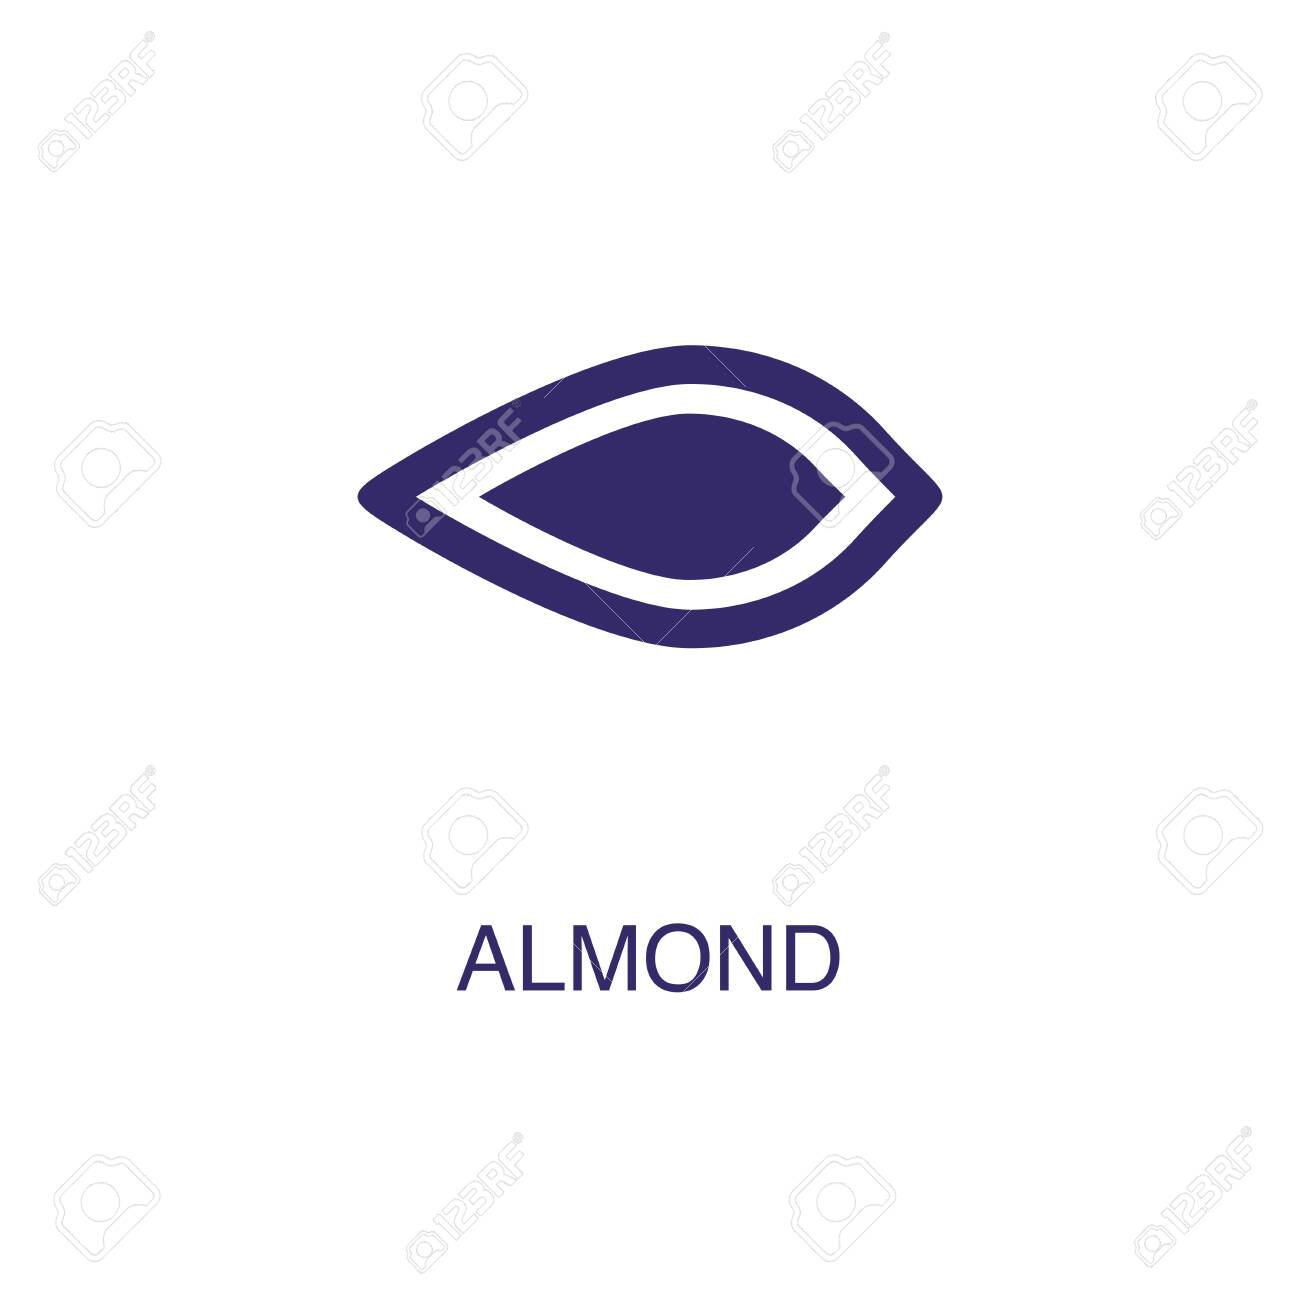 Almond element in flat simple style on white background. Almond icon, with text name concept template - 134450292